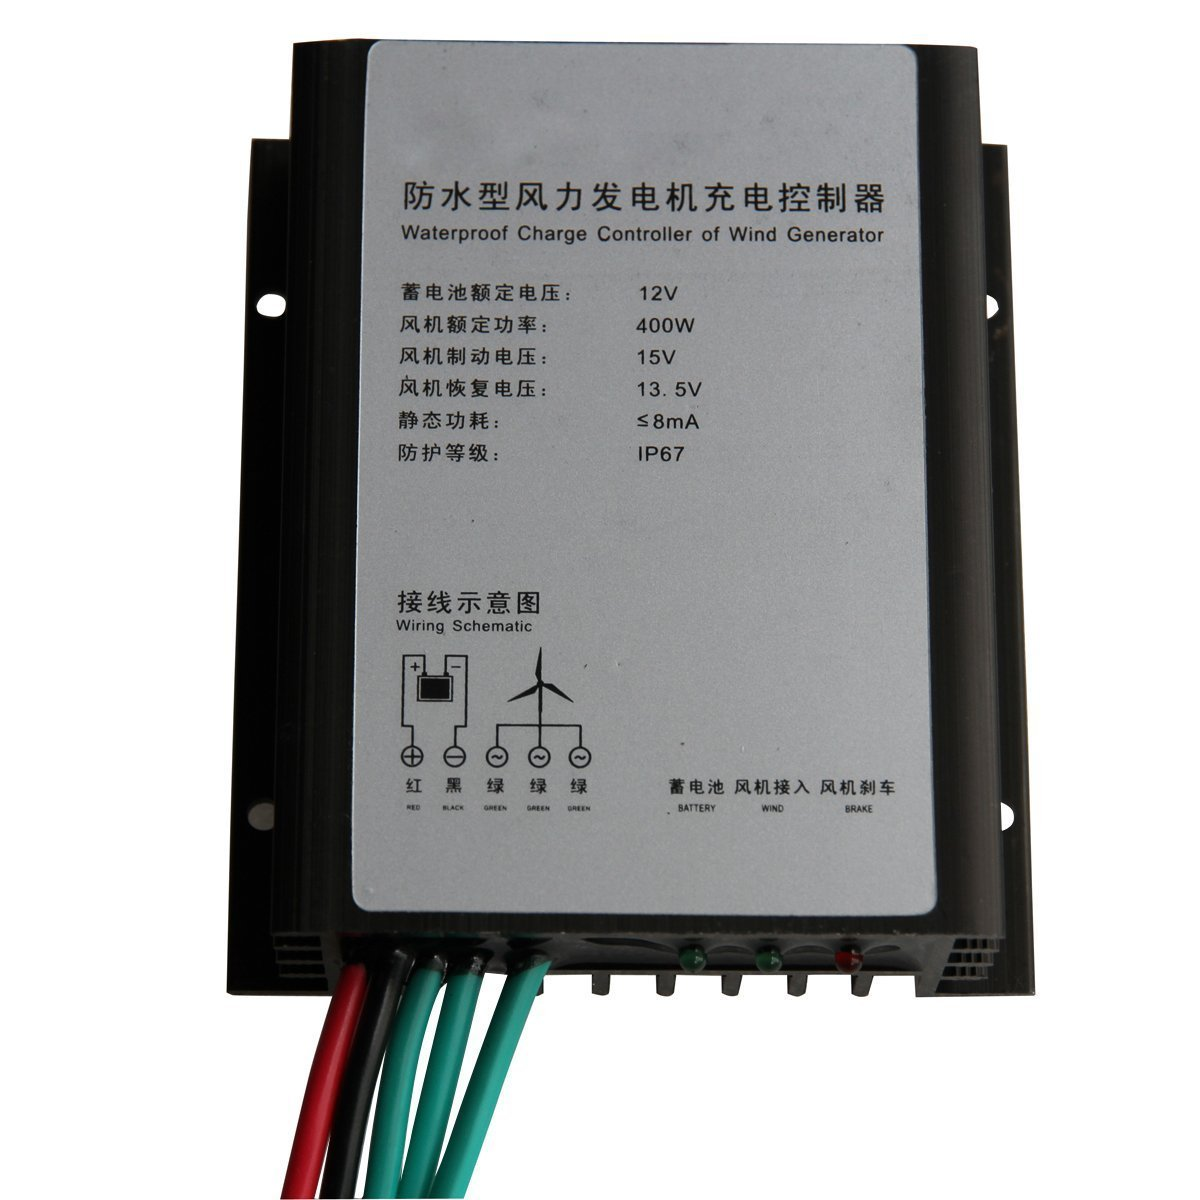 SUNGOLDPOWER New Waterproof 100W 200W 300W 400W 500W 600W 24V AC Wind Charge Controller Wind Turbine Wind Generator